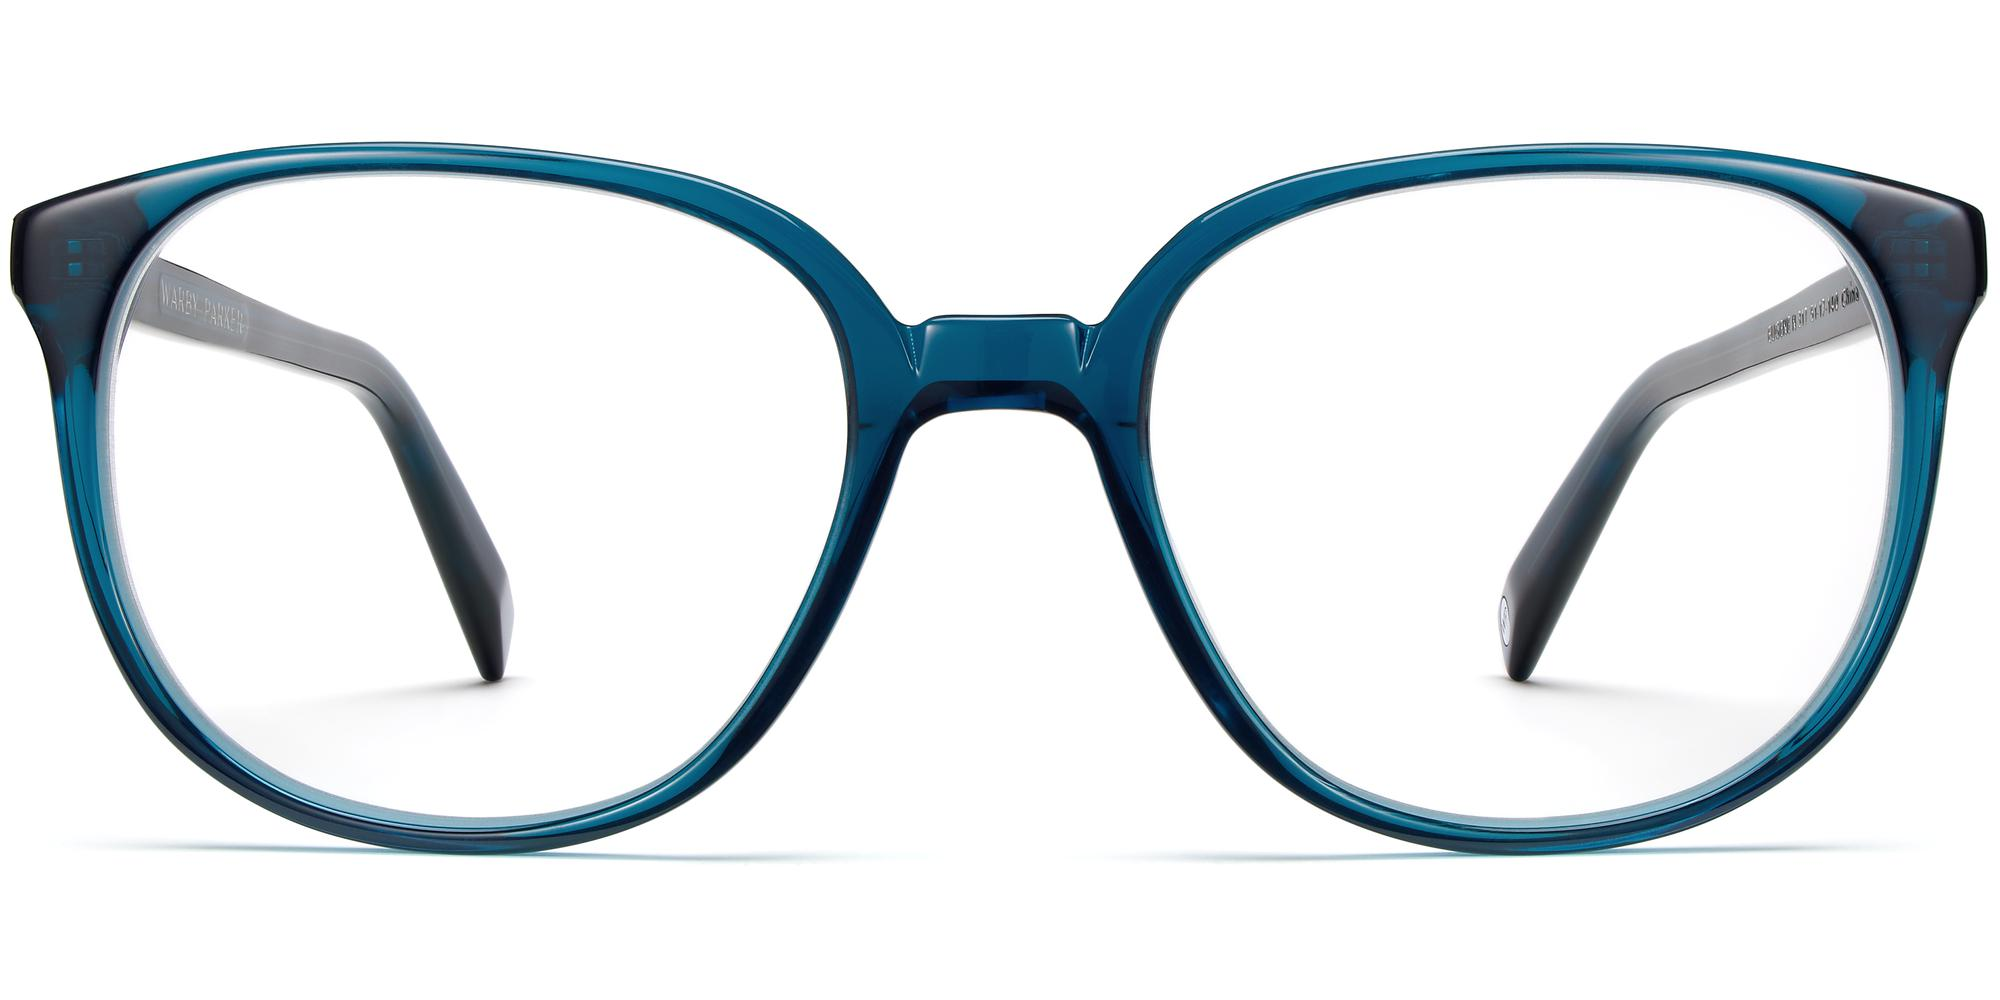 Front View Image of Eugene Eyeglasses Collection, by Warby Parker Brand, in Adriatic Crystal Color